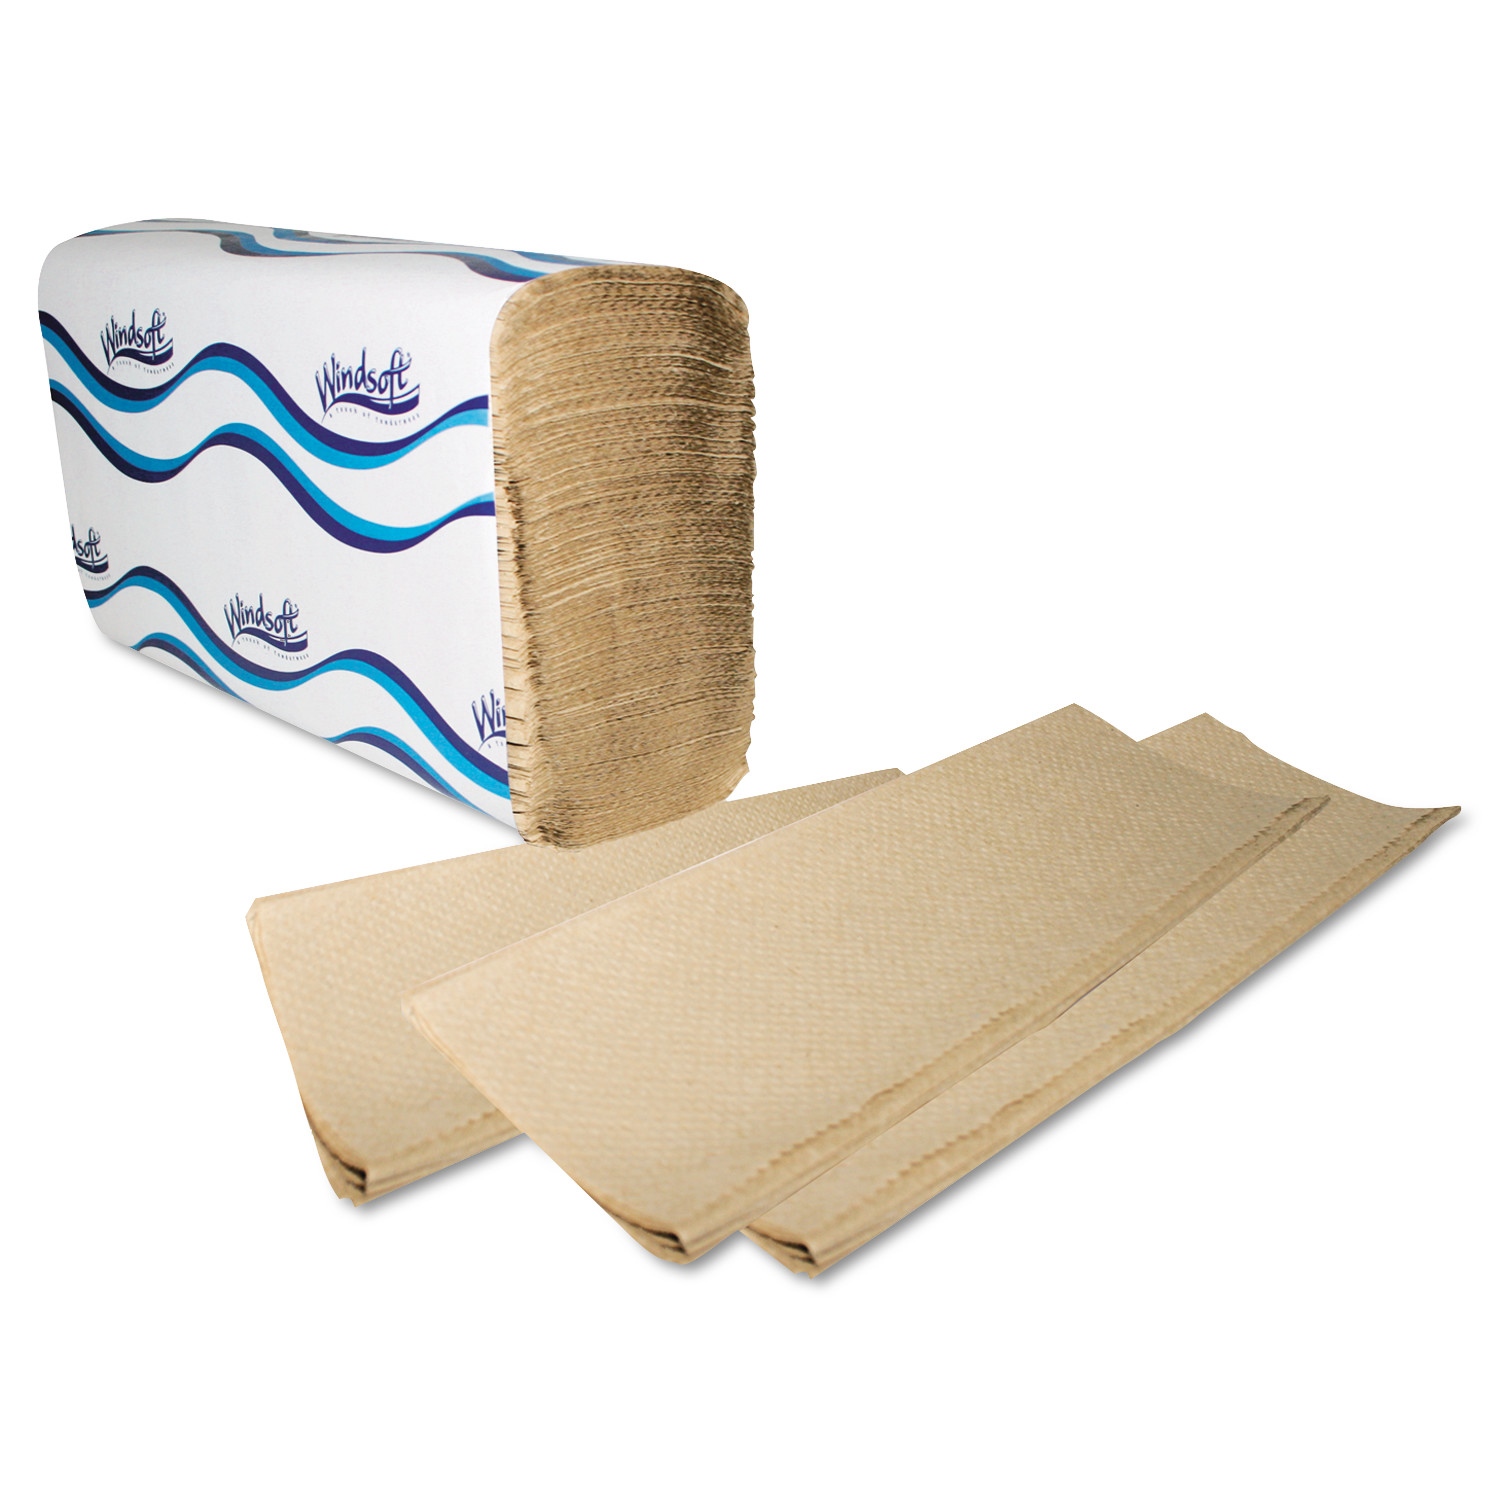 Windsoft Multifold Paper Towels, 1-Ply, 9 1/5 x 9 2/5, Natural, 250/Pack, 16 Packs/Carton